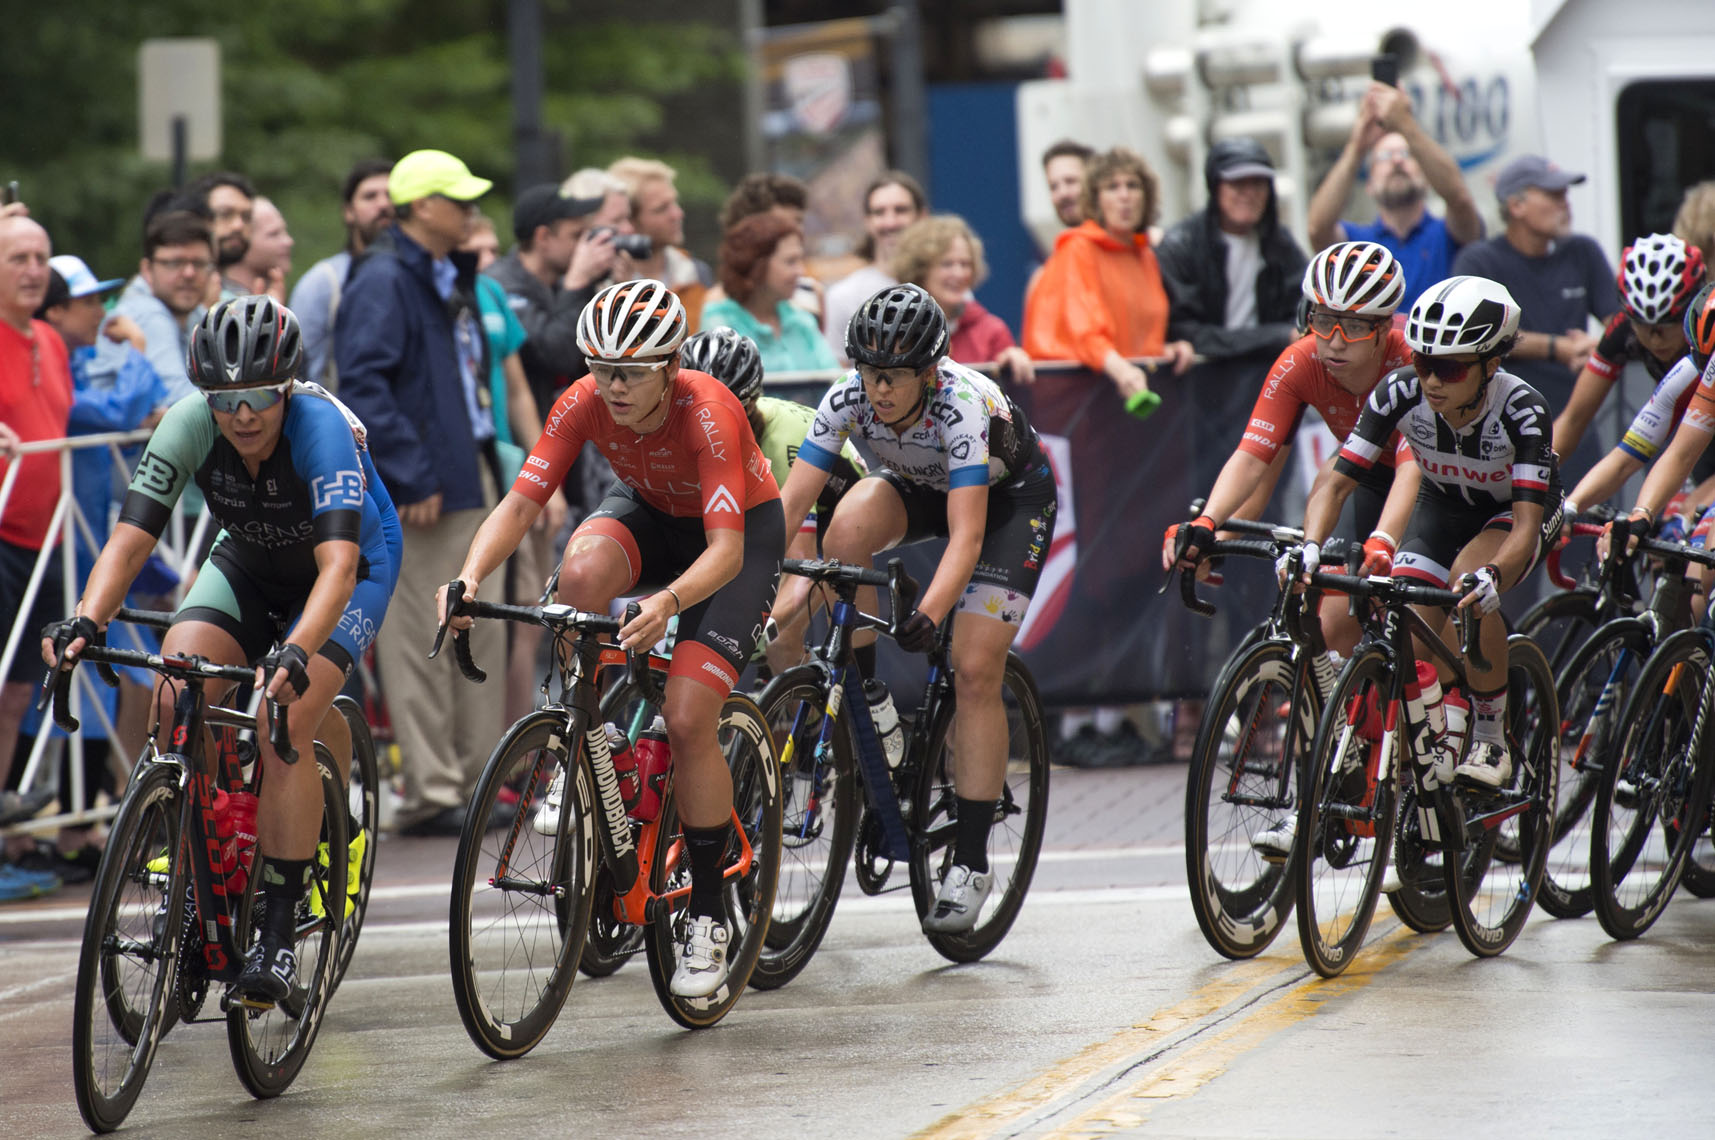 USPRO National Cycling Championships, 2018